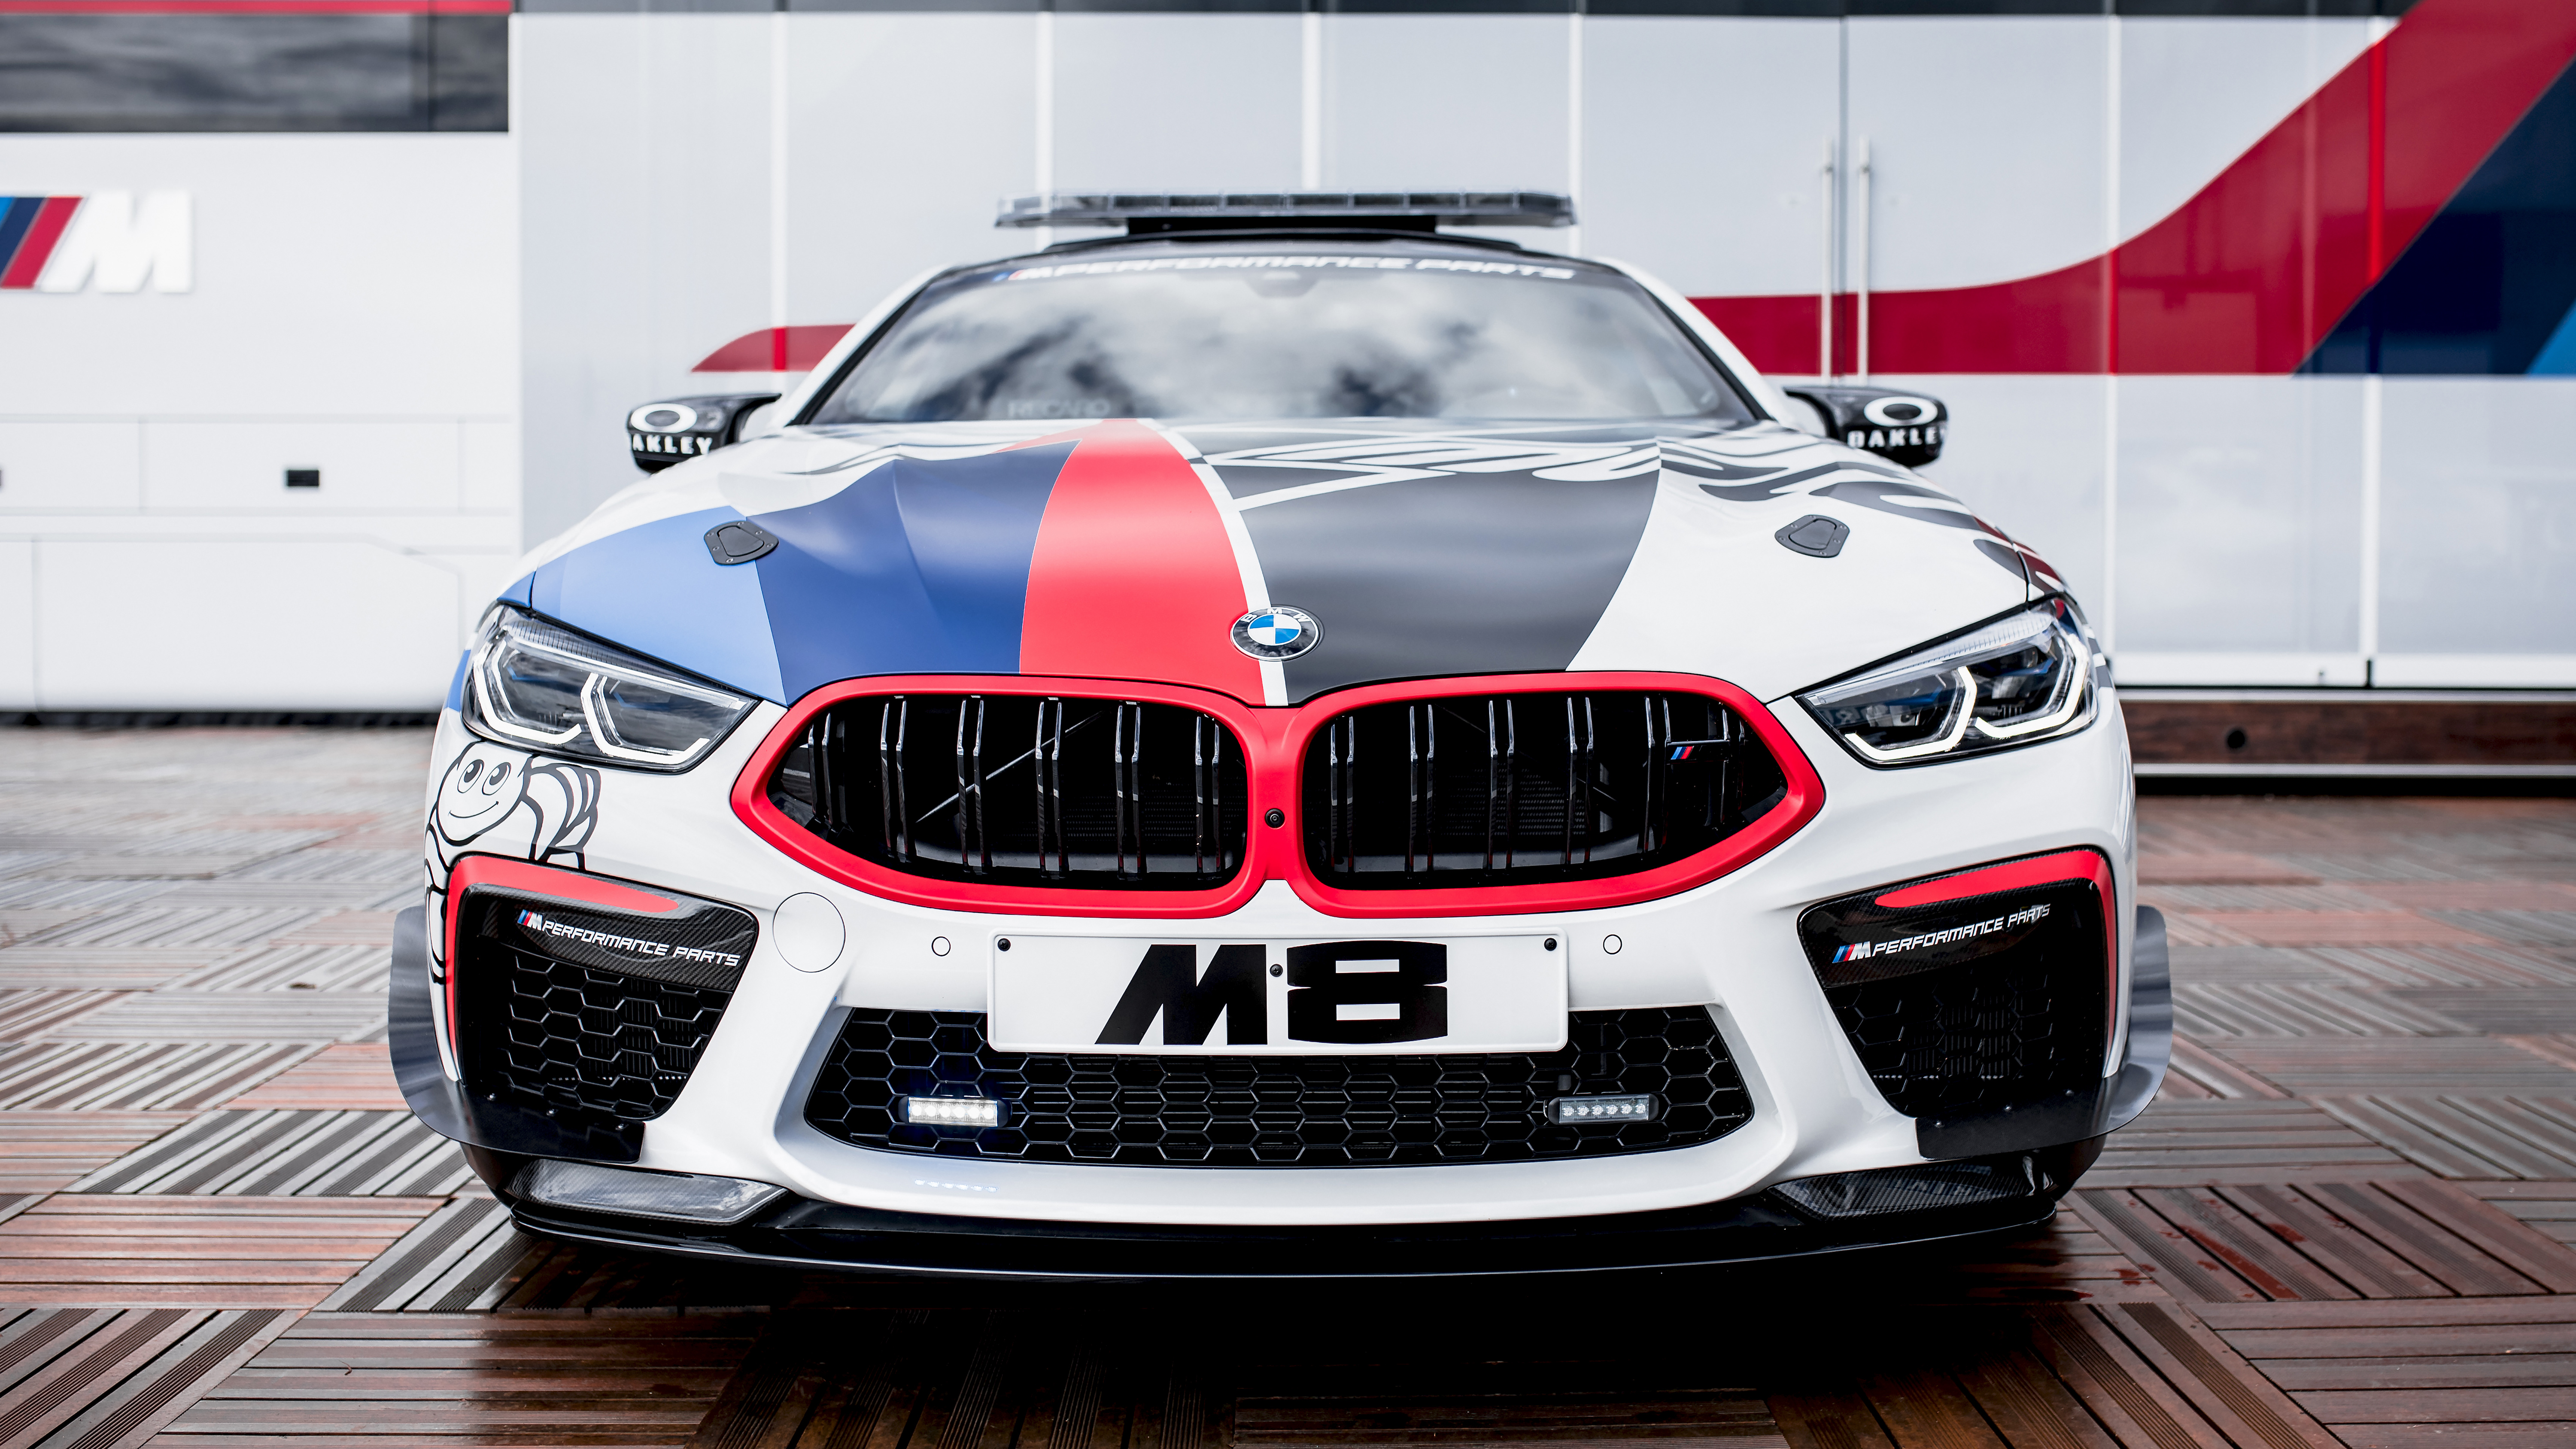 Bmw M8 Competition Coupe Motogp Safety Car 2019 5k Wallpaper Hd Car Wallpapers Id 13037